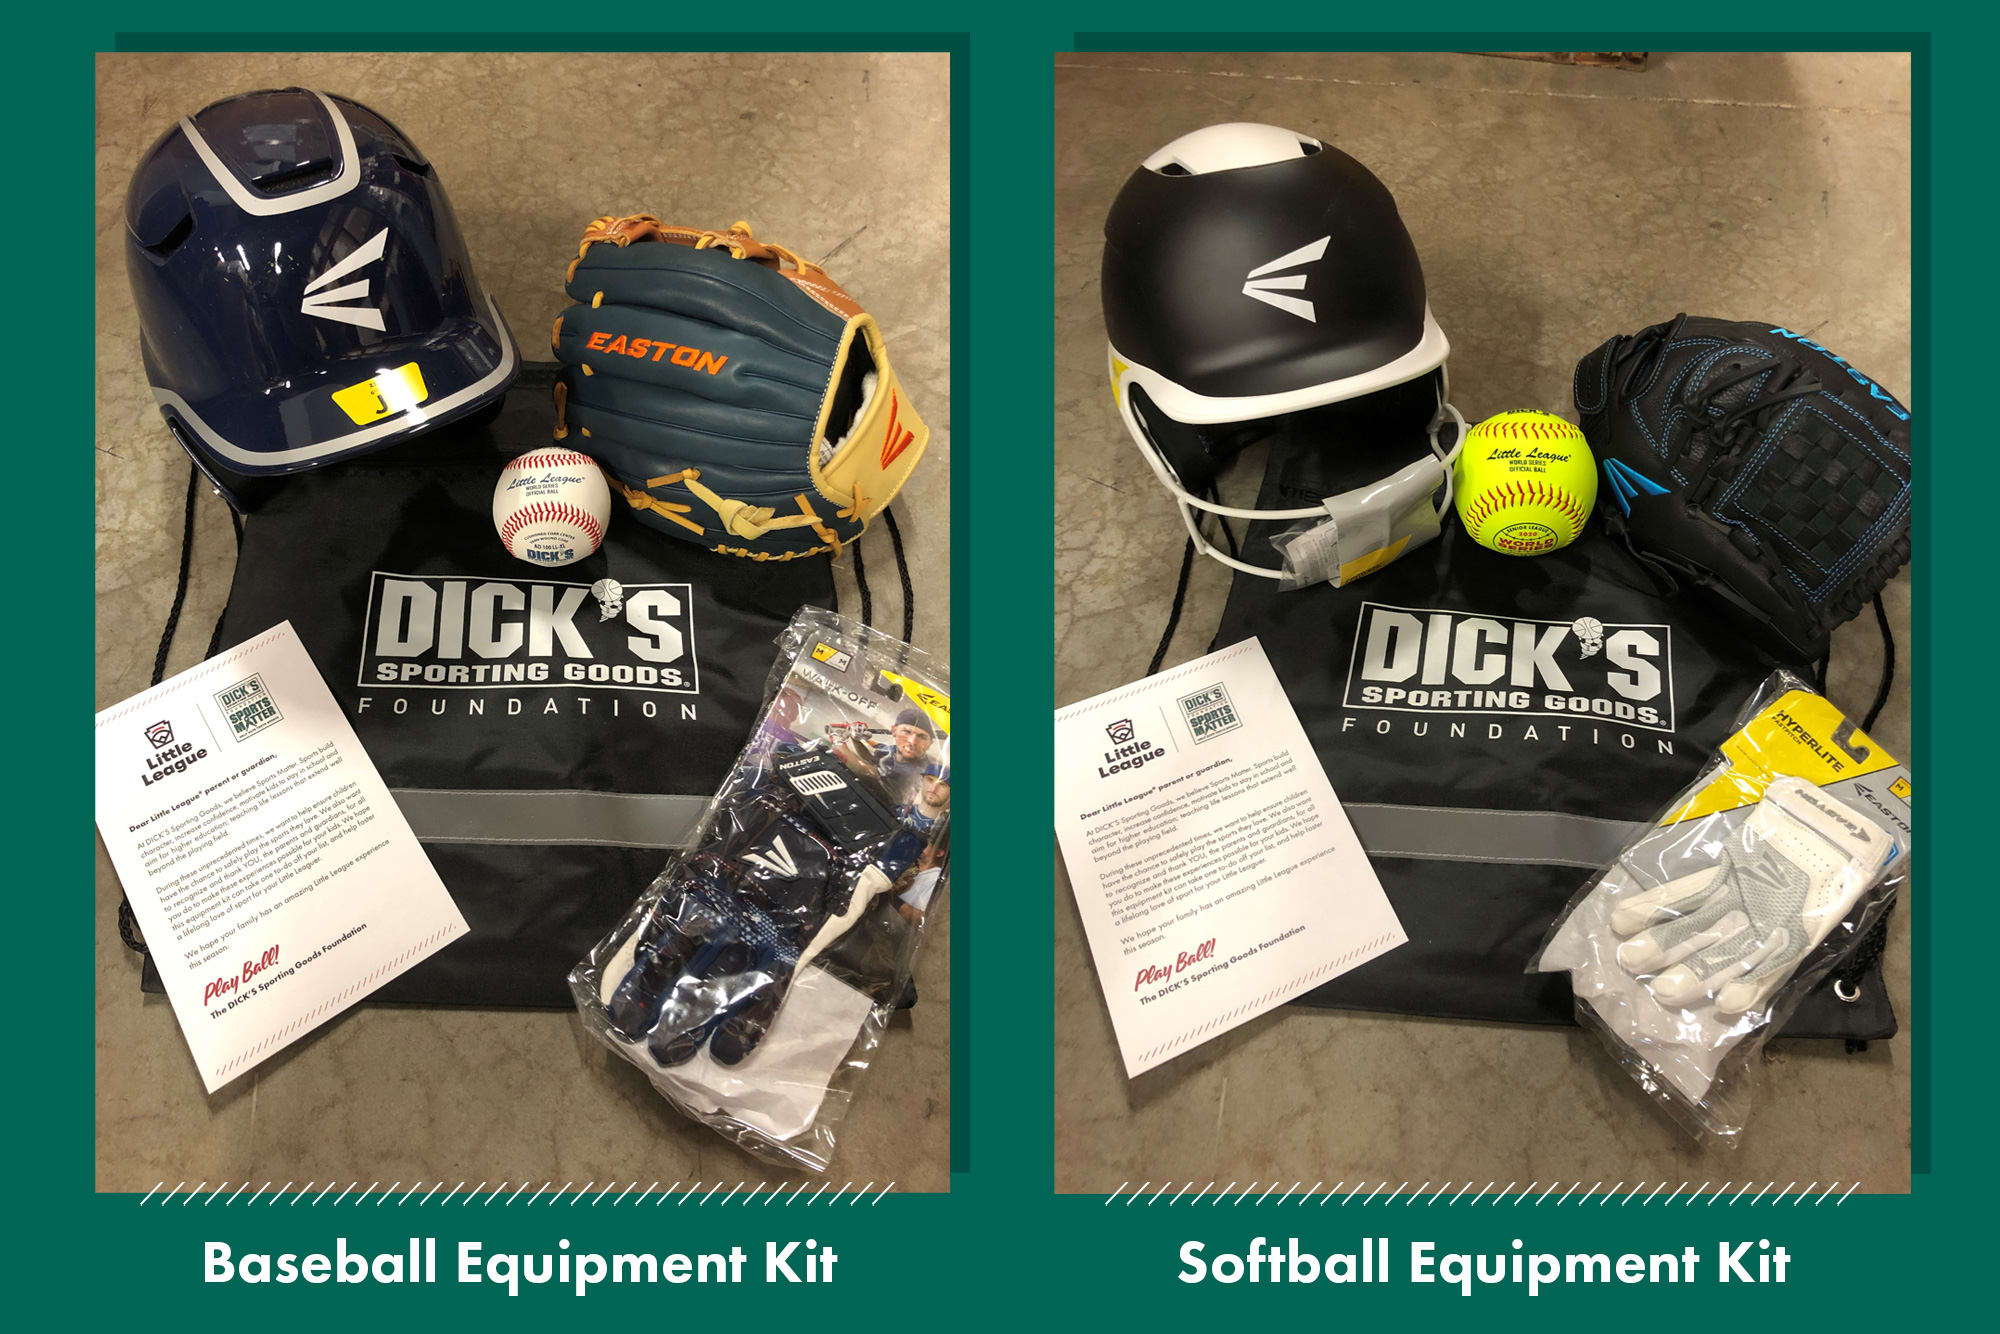 DICK'S Sporting Goods Equipment Kits